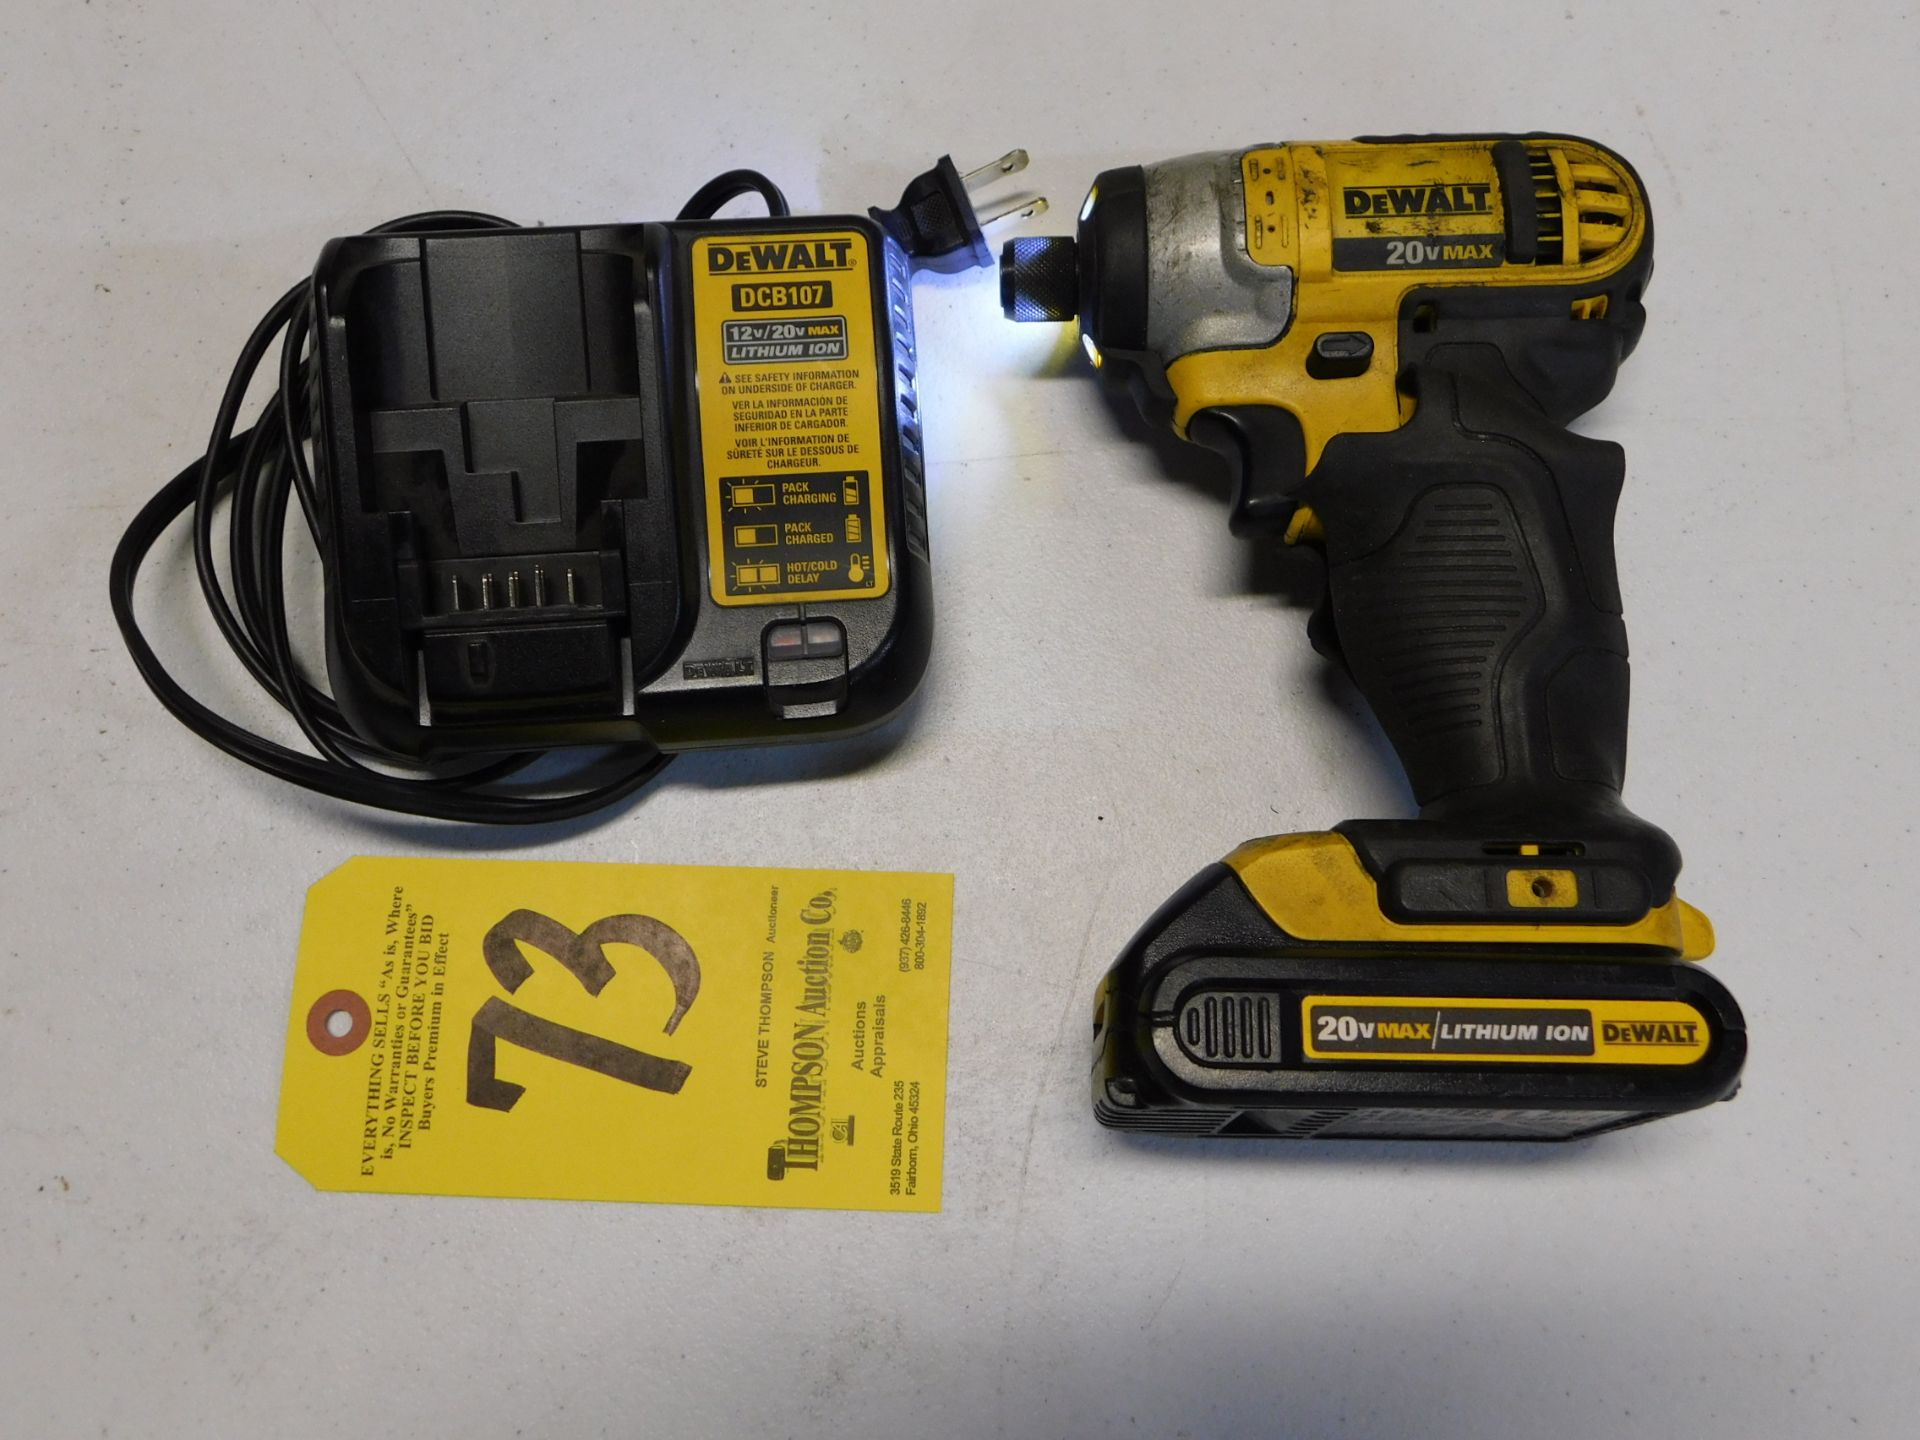 Dewalt DCF885 Cordless 20V Impact Driver with Battery and Charger, Lot Location 3204 Olympia Dr.